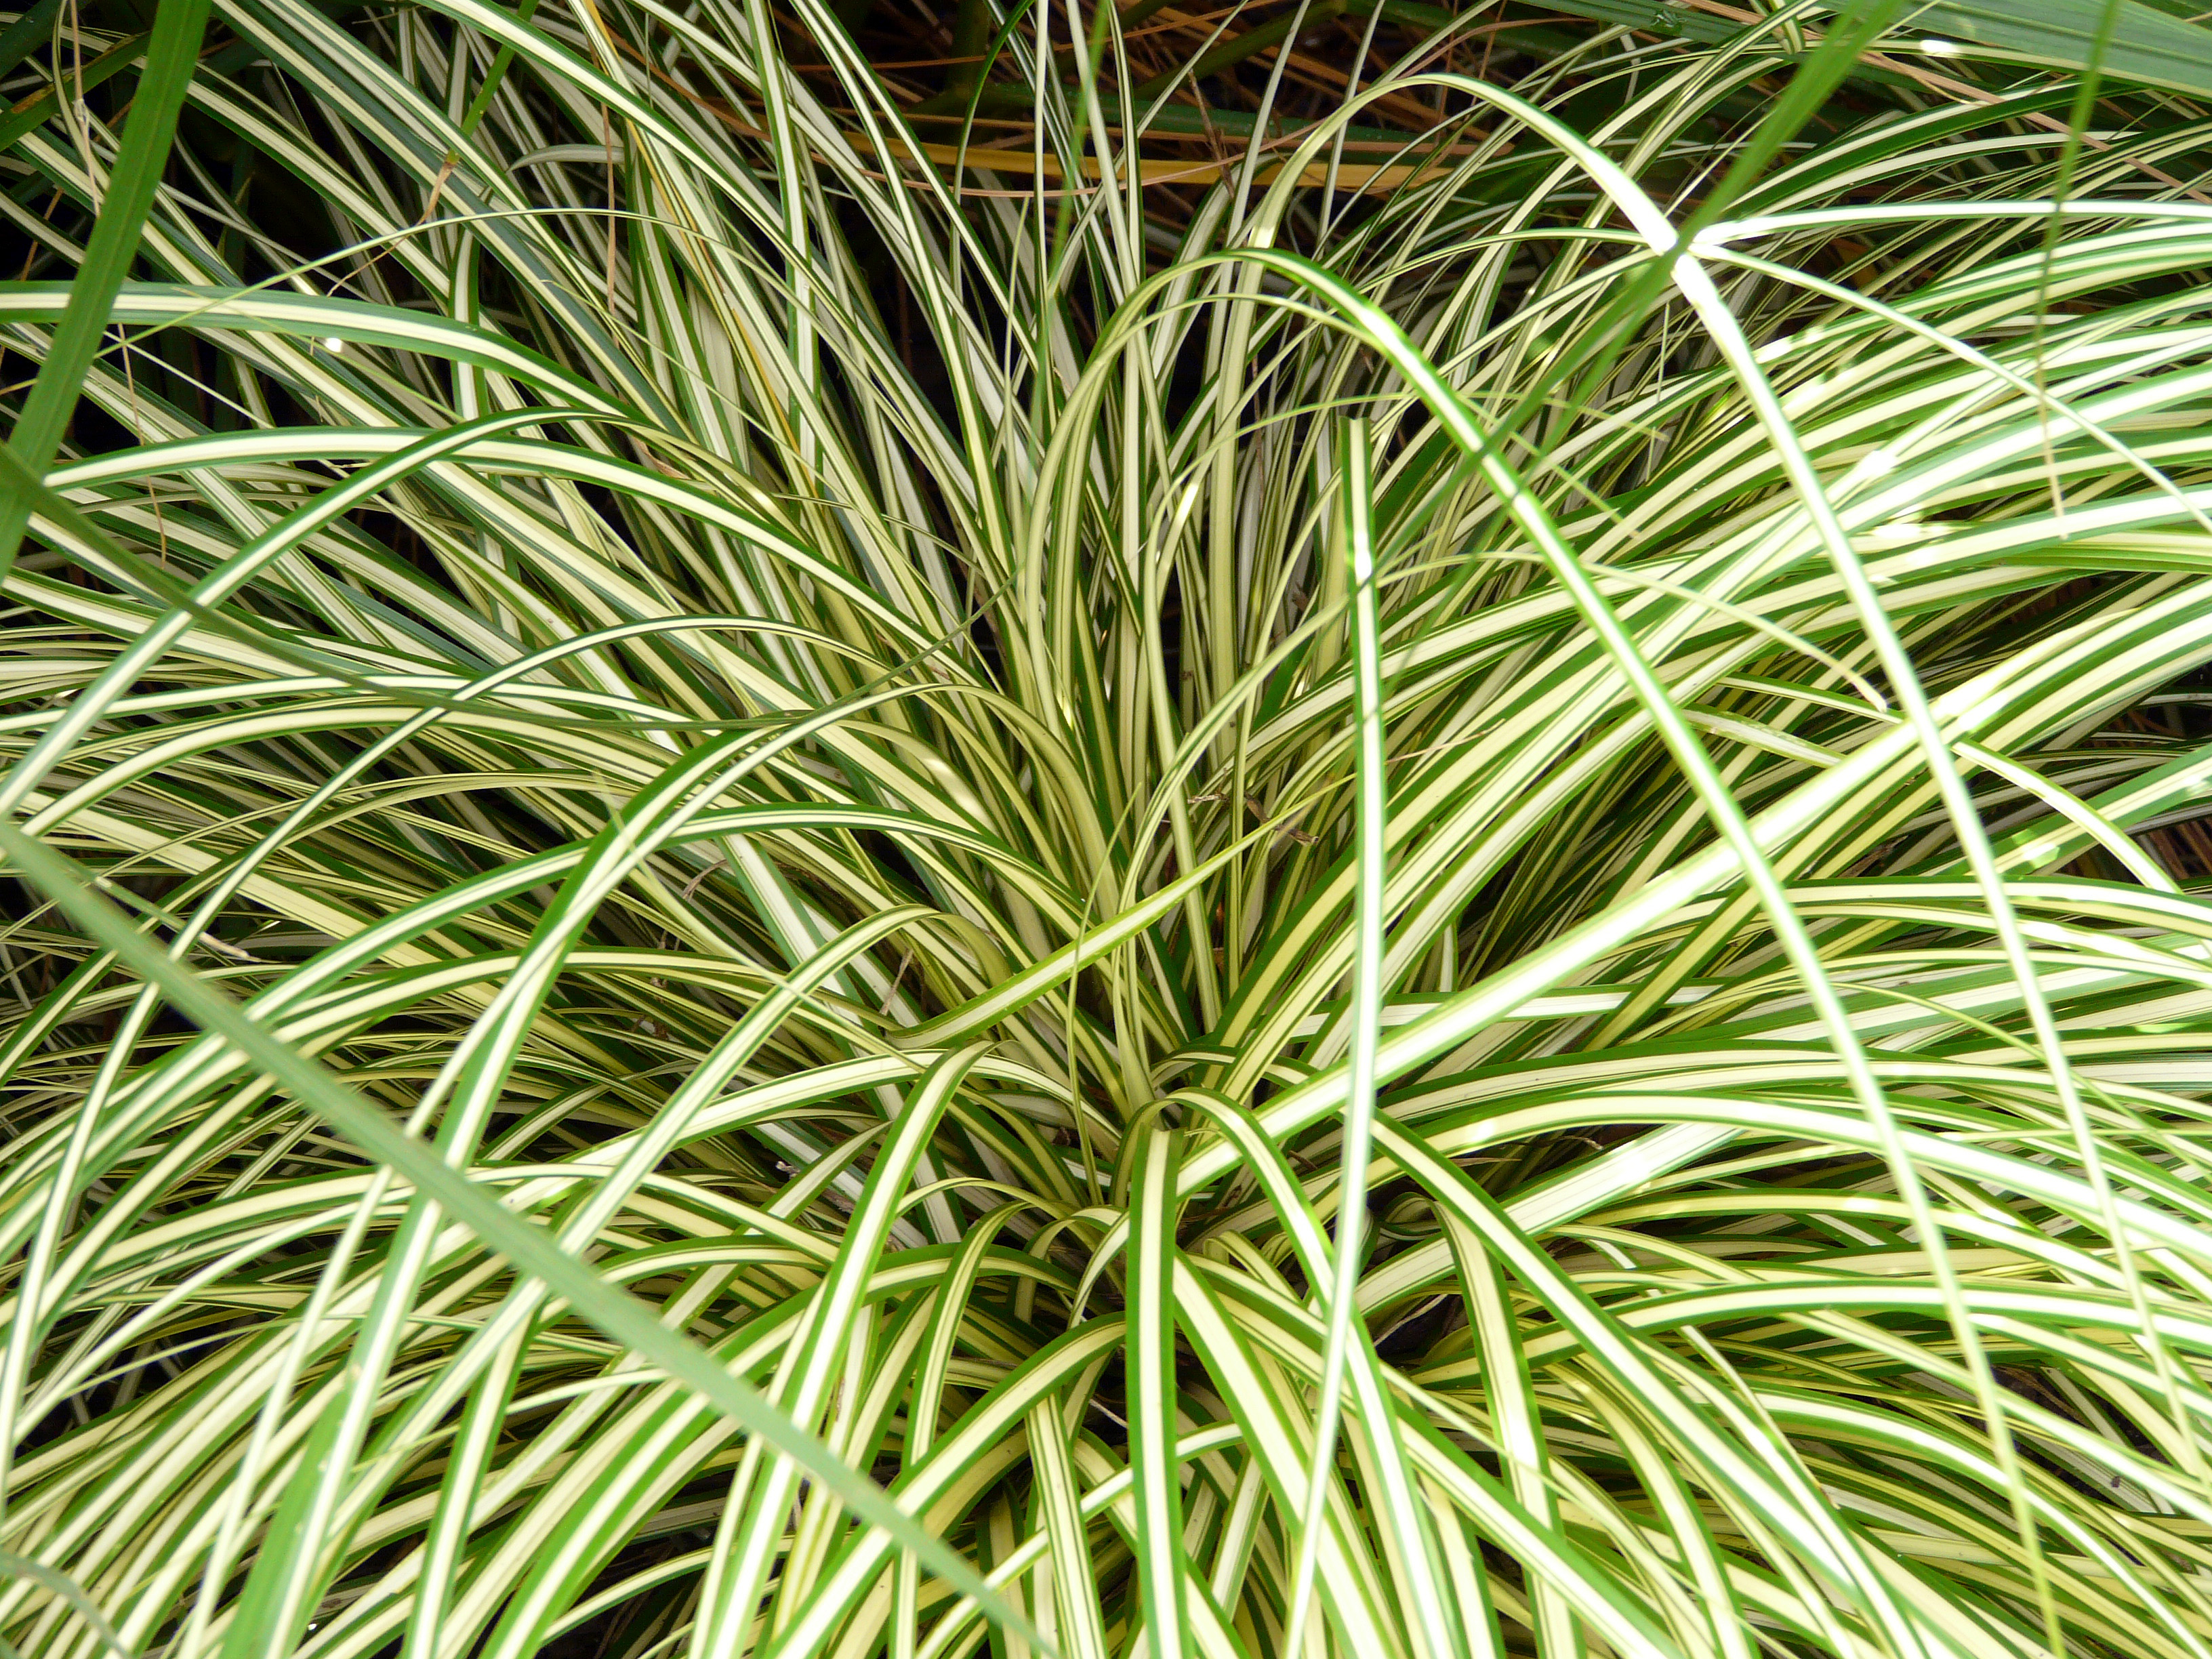 Carex oshimensis 39 evergold 39 evergold sedge baker environmental nursery - Cadre x ...